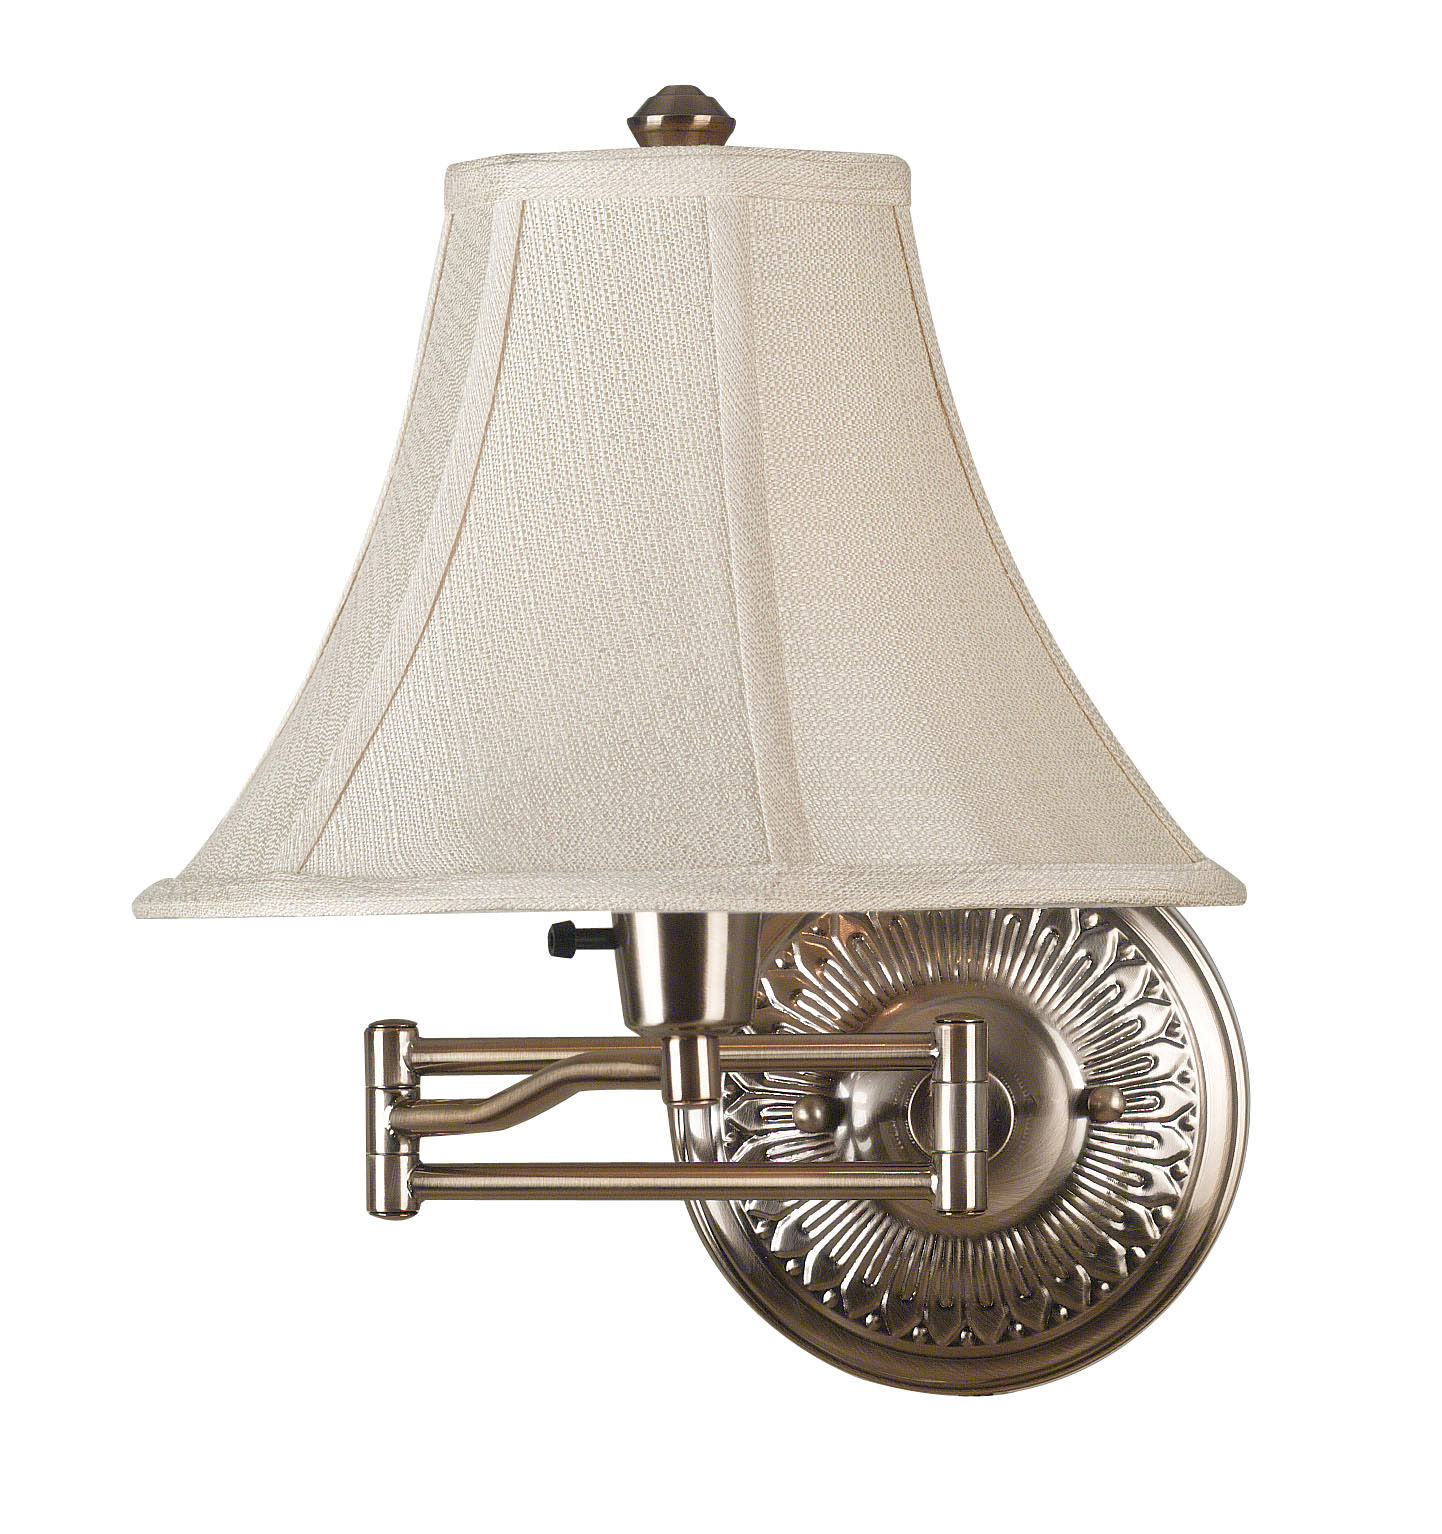 Kenroy Home 21395BRBR Amherst Swing Arm Wall Lamp